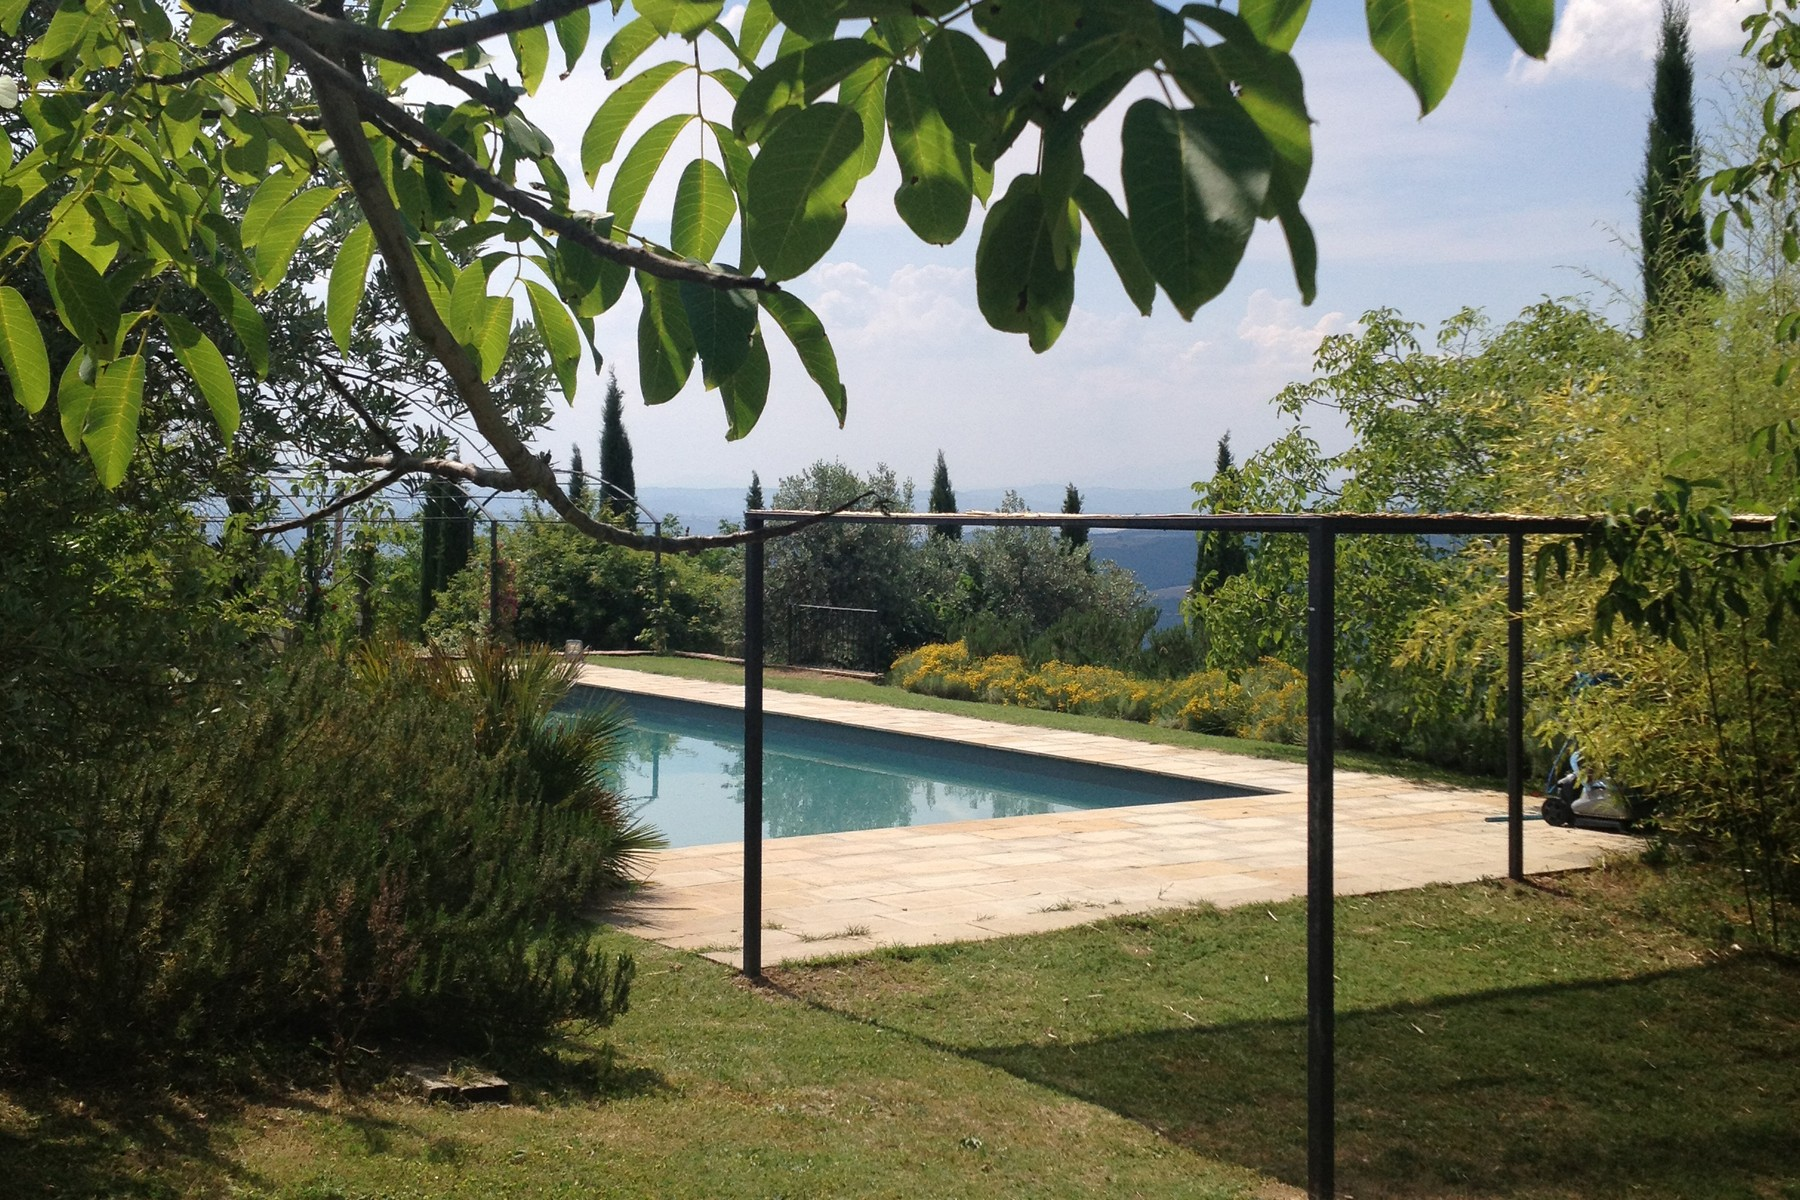 Additional photo for property listing at Estate with stunning views of Corbara Lake Strada Provinciale 89 Other Terni, Terni 06049 Italy